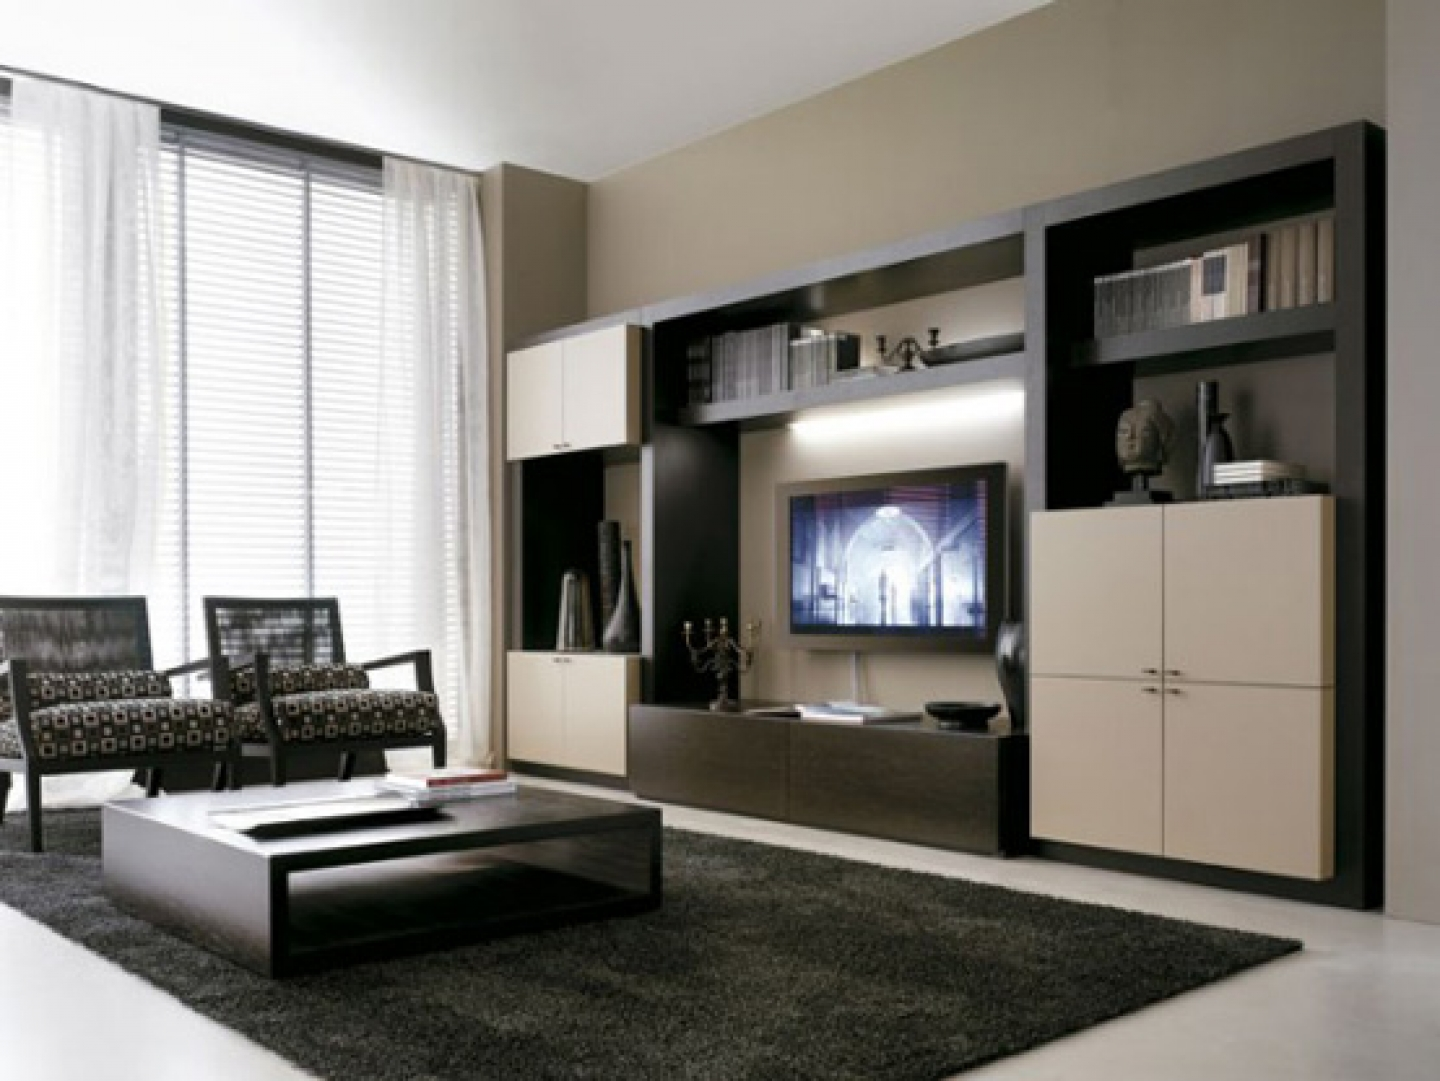 Tv Wall Units For Small Living RoomTv Wall Units For Small Living Room   Modern House. Wall Unit Designs For Small Living Room. Home Design Ideas